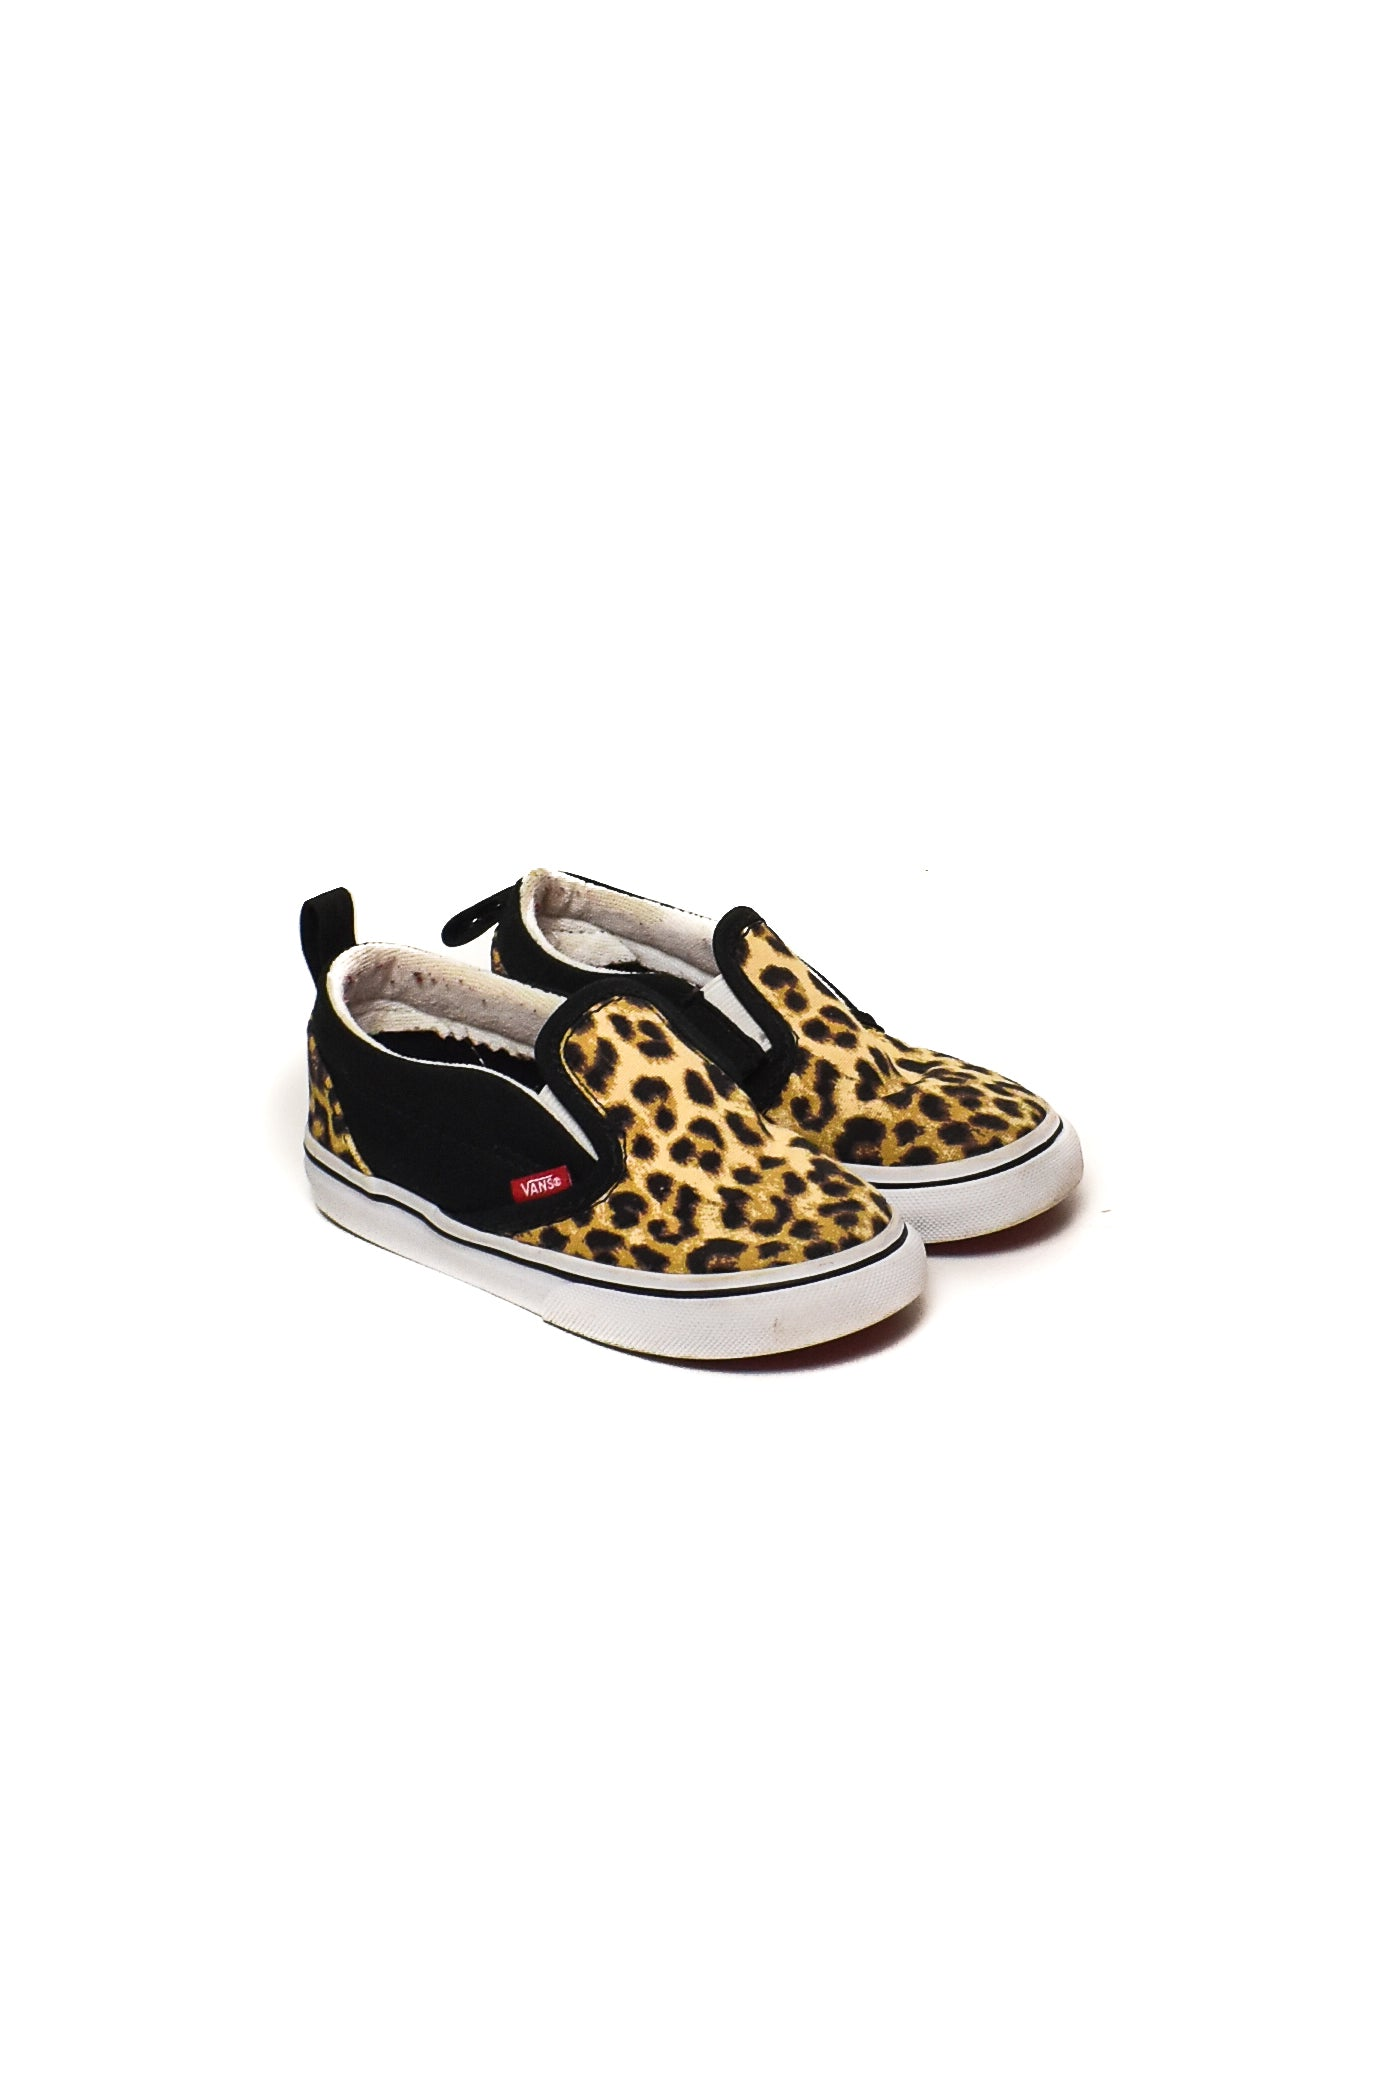 10006193 Vans Kids~Shoes 4T (US 9) at Retykle